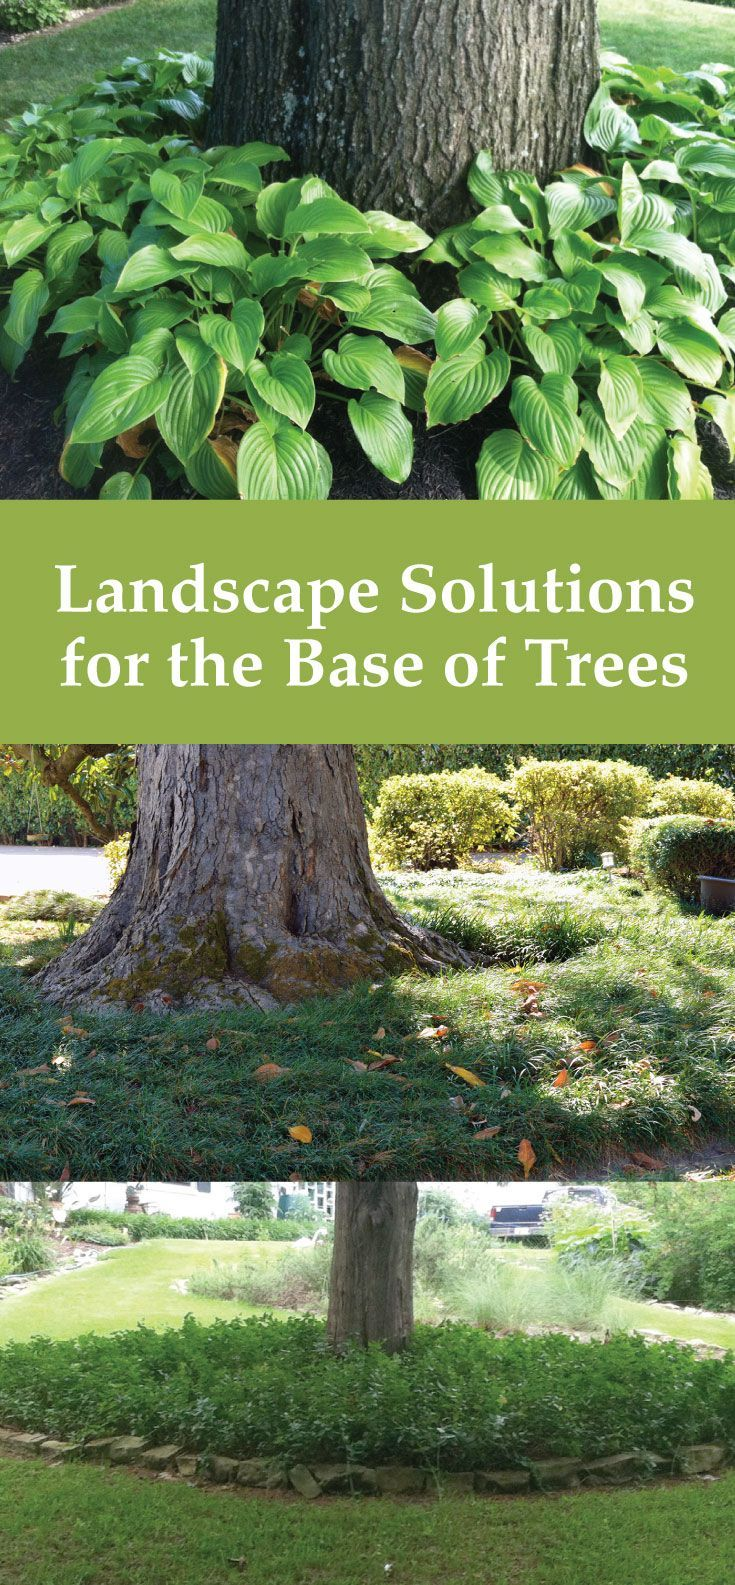 Ideas for Landscaping Around Trees -- Landscaping solutions for the base of trees. Reduce weed-eating by planting around trees. Some of my favorite ideas for plants and styles. via @gardenexperimnt